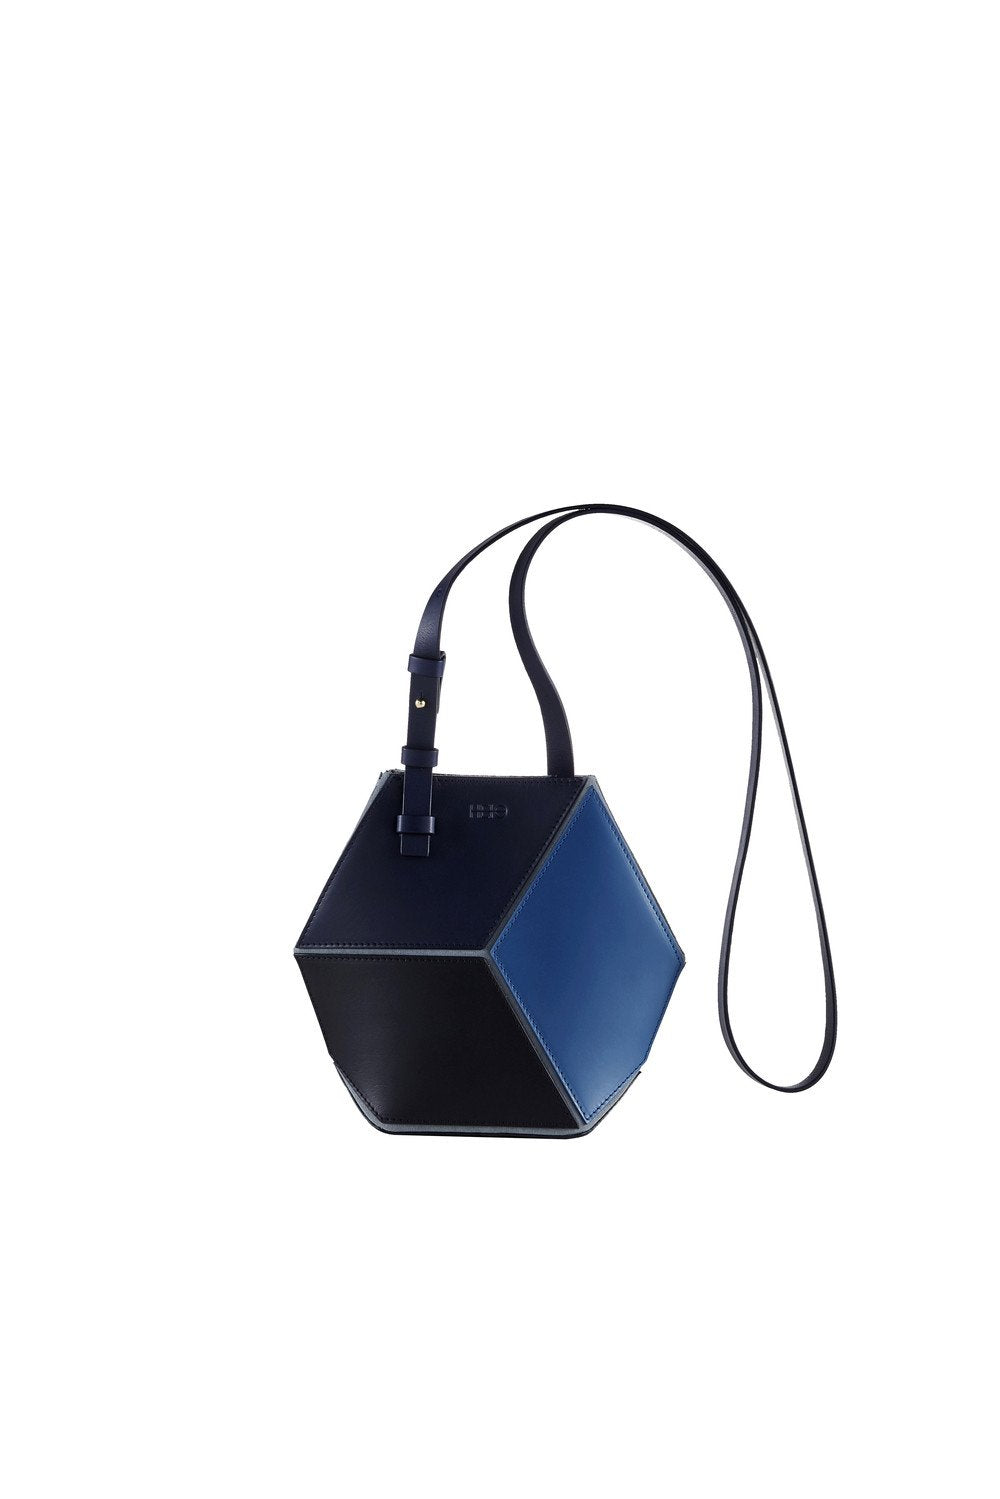 The Cube One World Small Cross Body